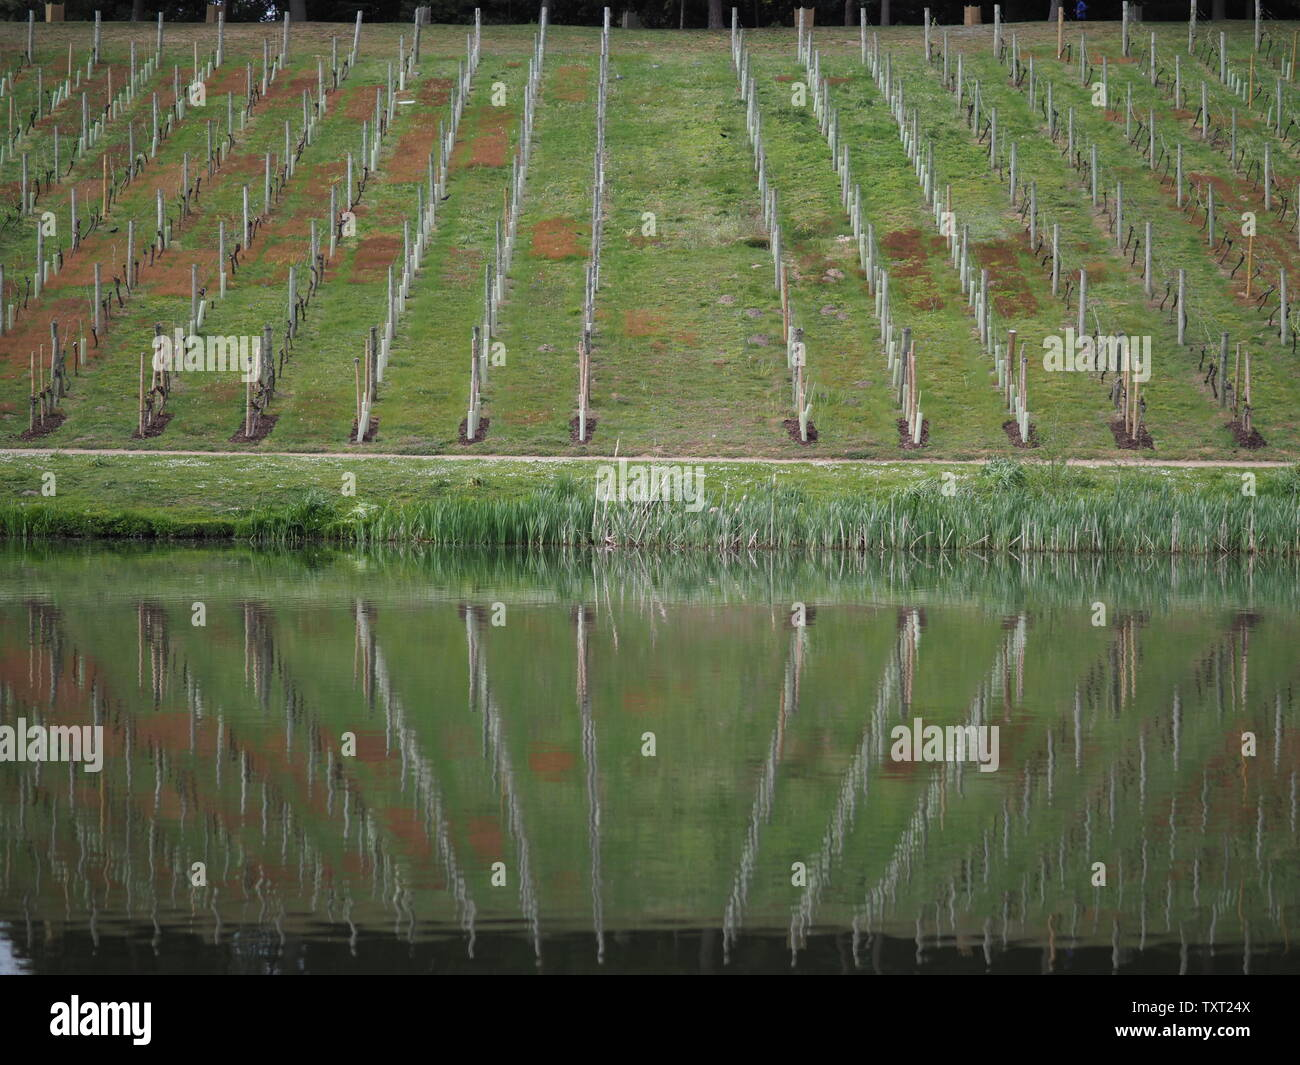 April 2019 - Serene Reflection Of A Vineyard In Water At A Landscape Garden In UK - Stock Image